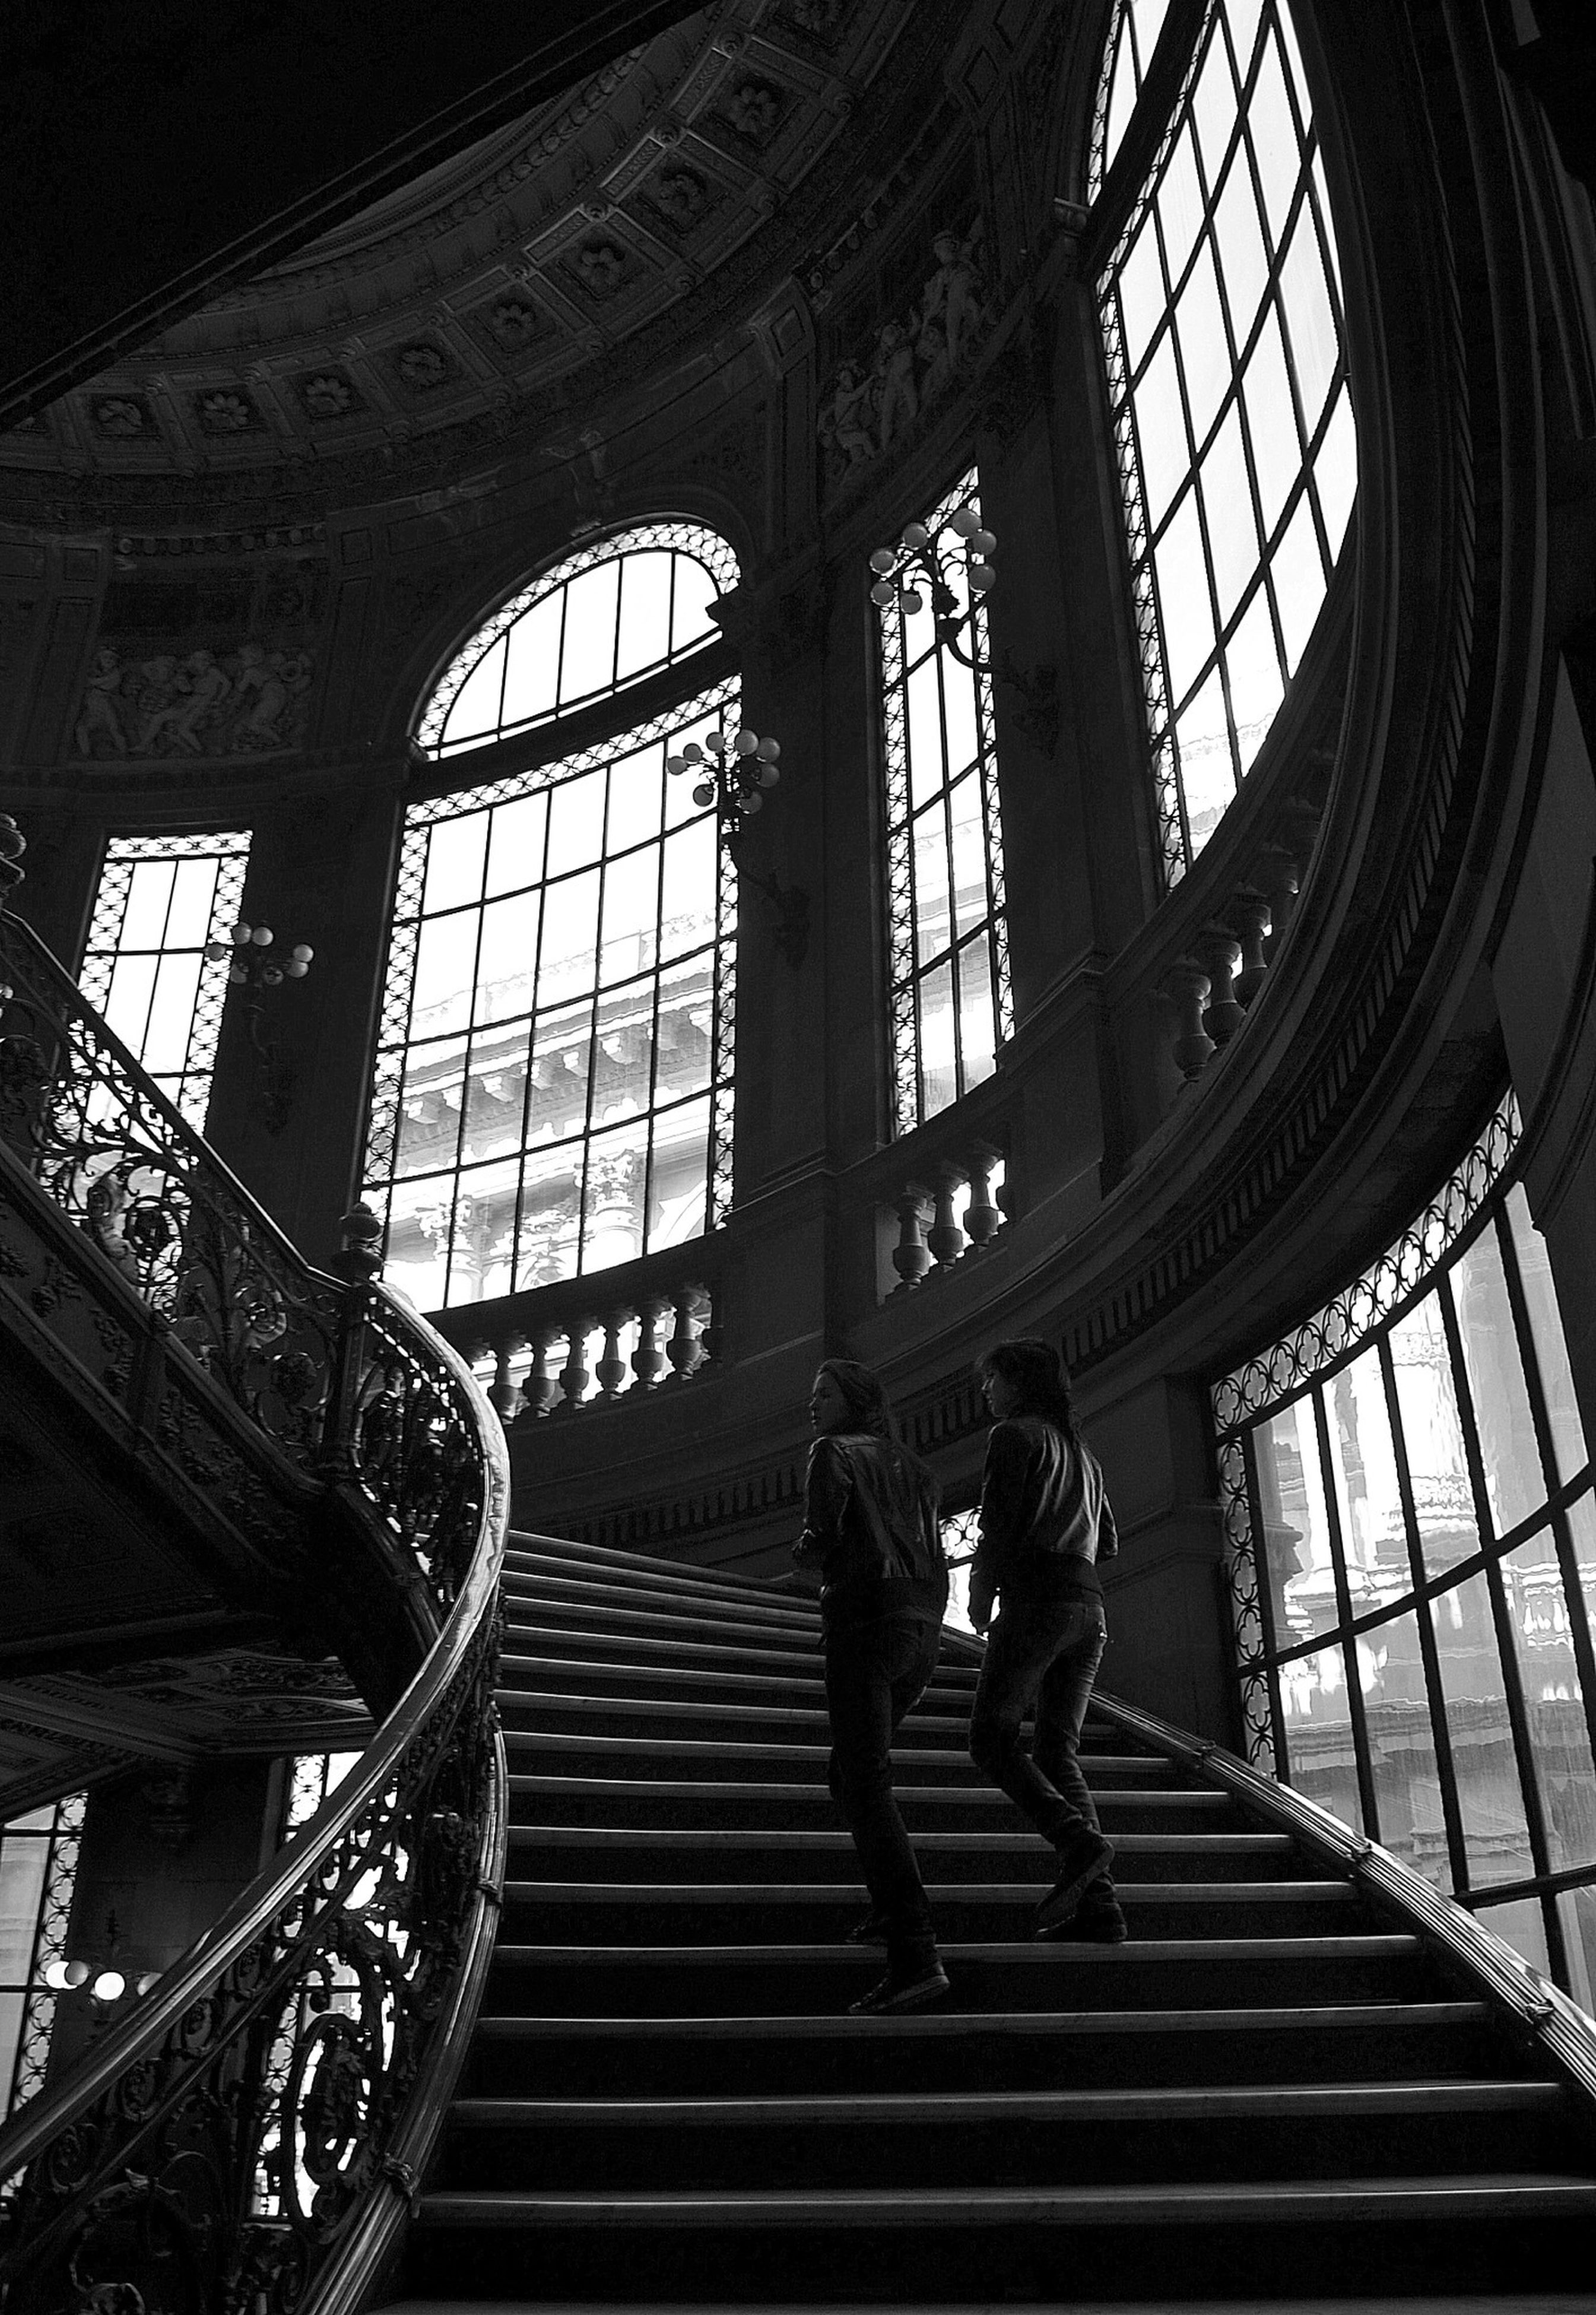 indoors, steps, architecture, steps and staircases, built structure, staircase, arch, railing, lifestyles, men, low angle view, stairs, window, person, leisure activity, place of worship, history, standing